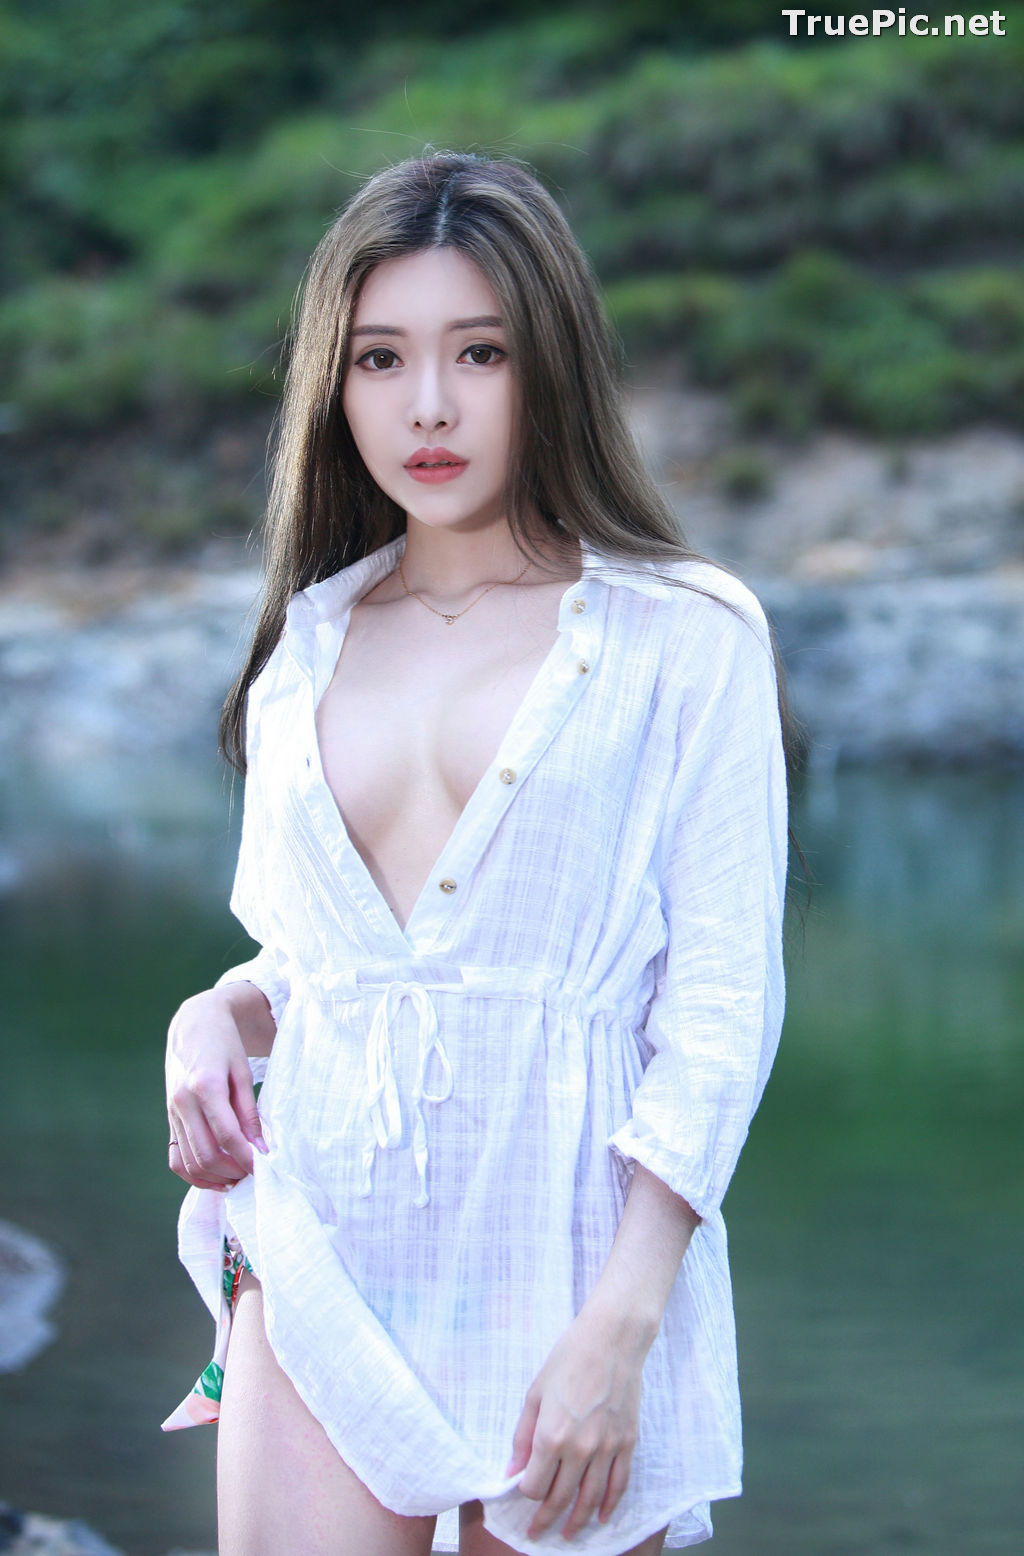 Image Taiwanese Model - 莊舒潔 - Sexy and Beautiful Big Eyes Girl- TruePic.net - Picture-4